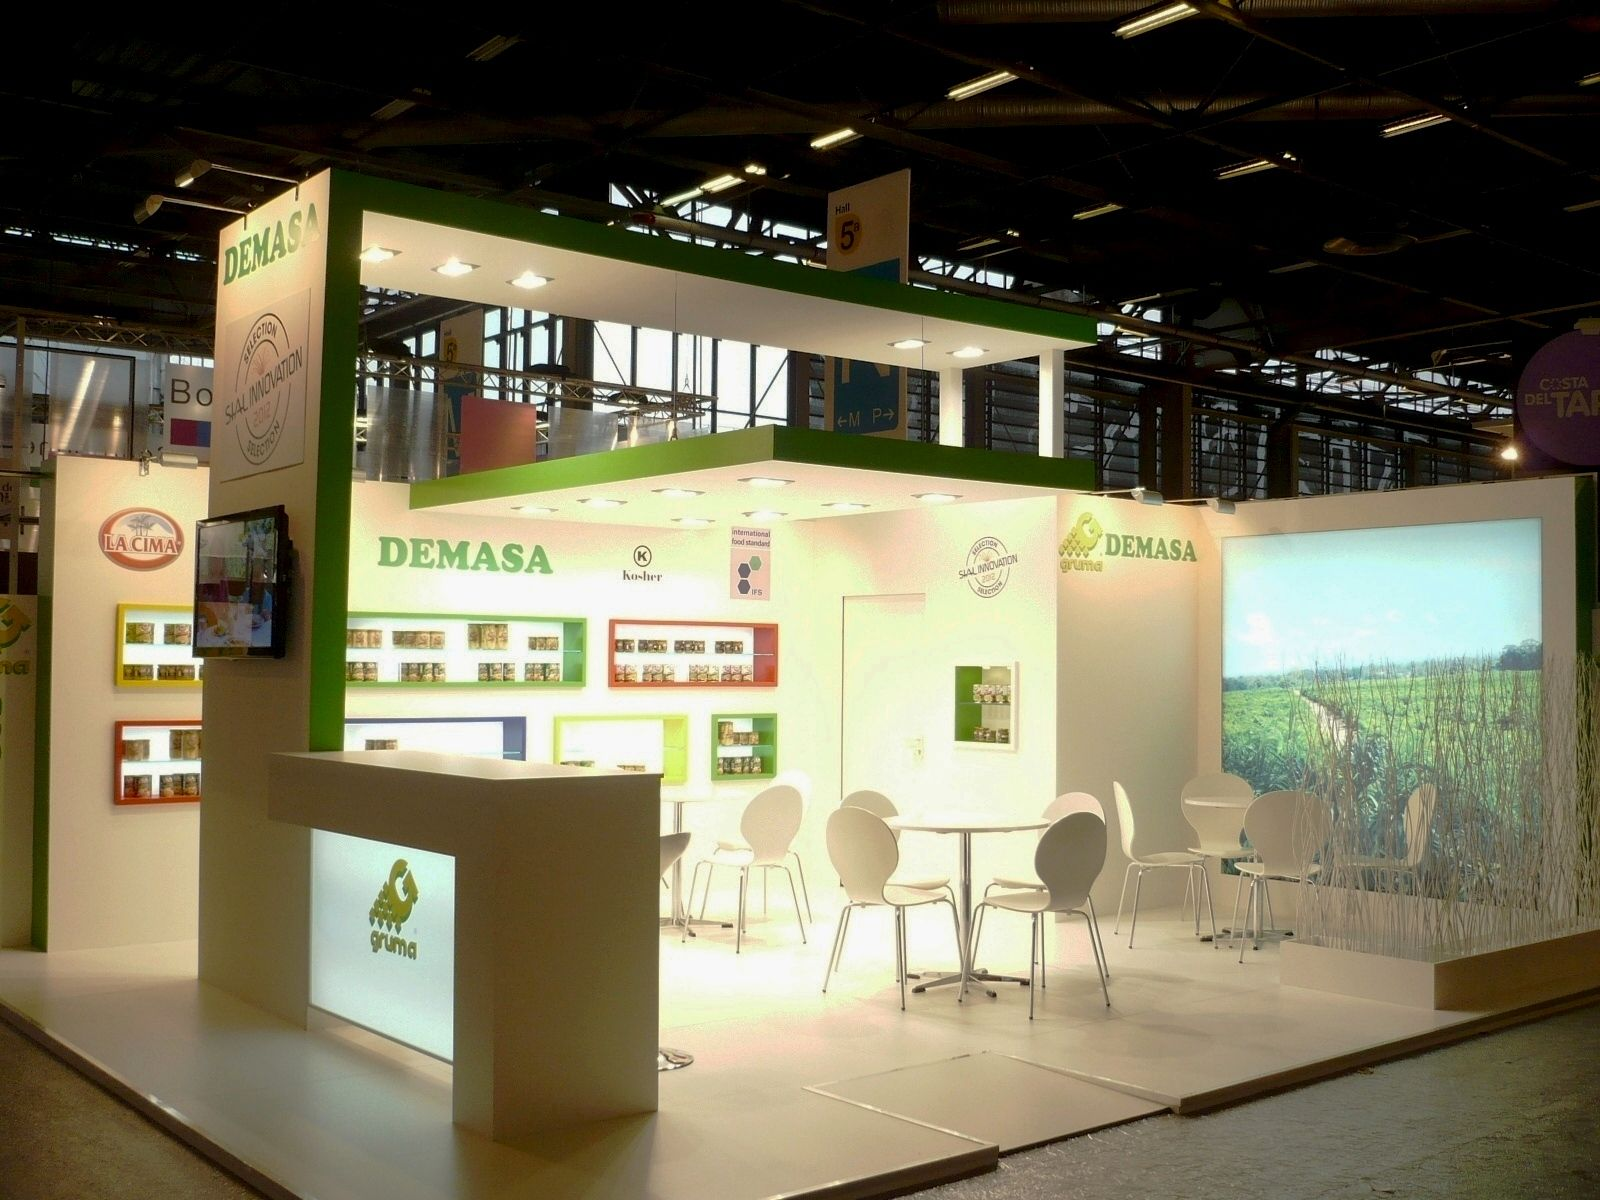 Modern Exhibition Stand By Me : Stand demasa at sial exhibition in paris